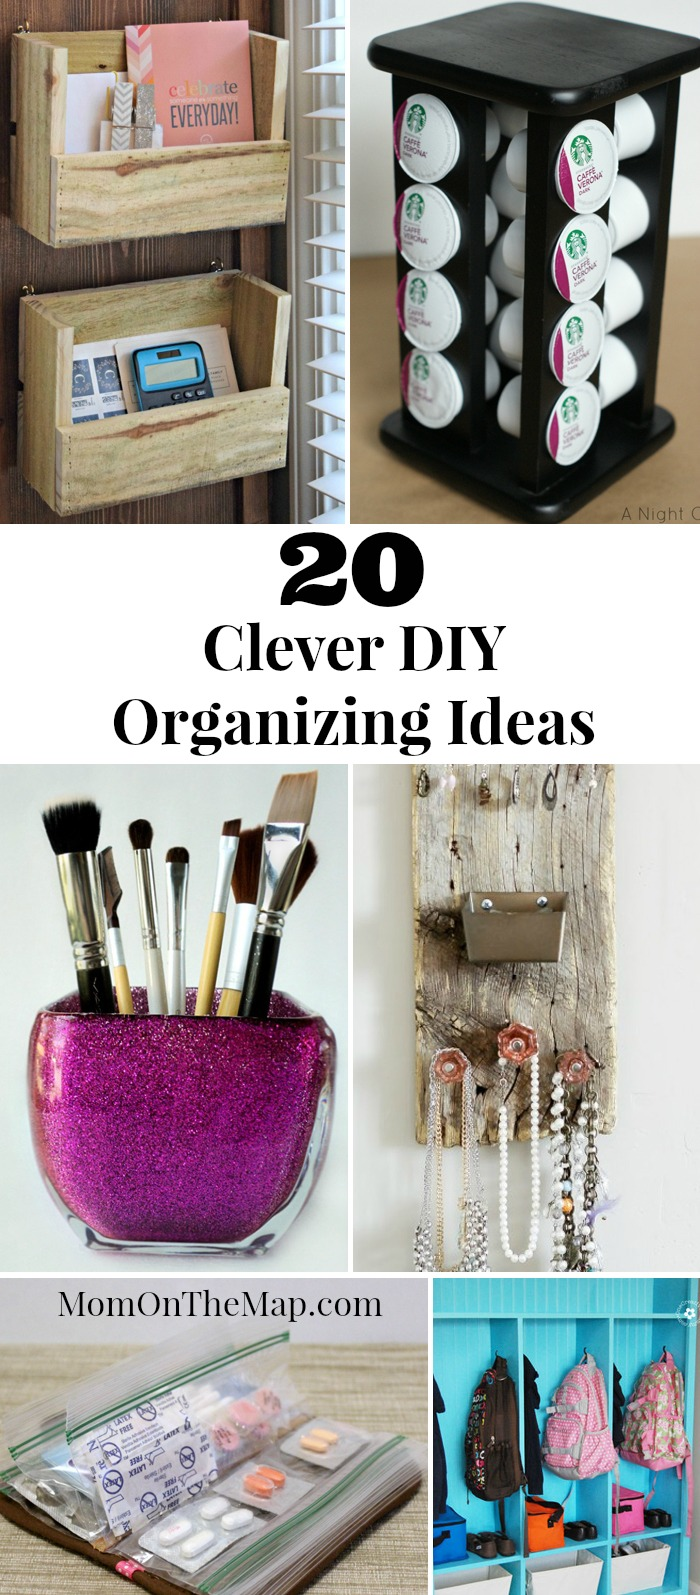 20 Clever DIY Organizing Ideas